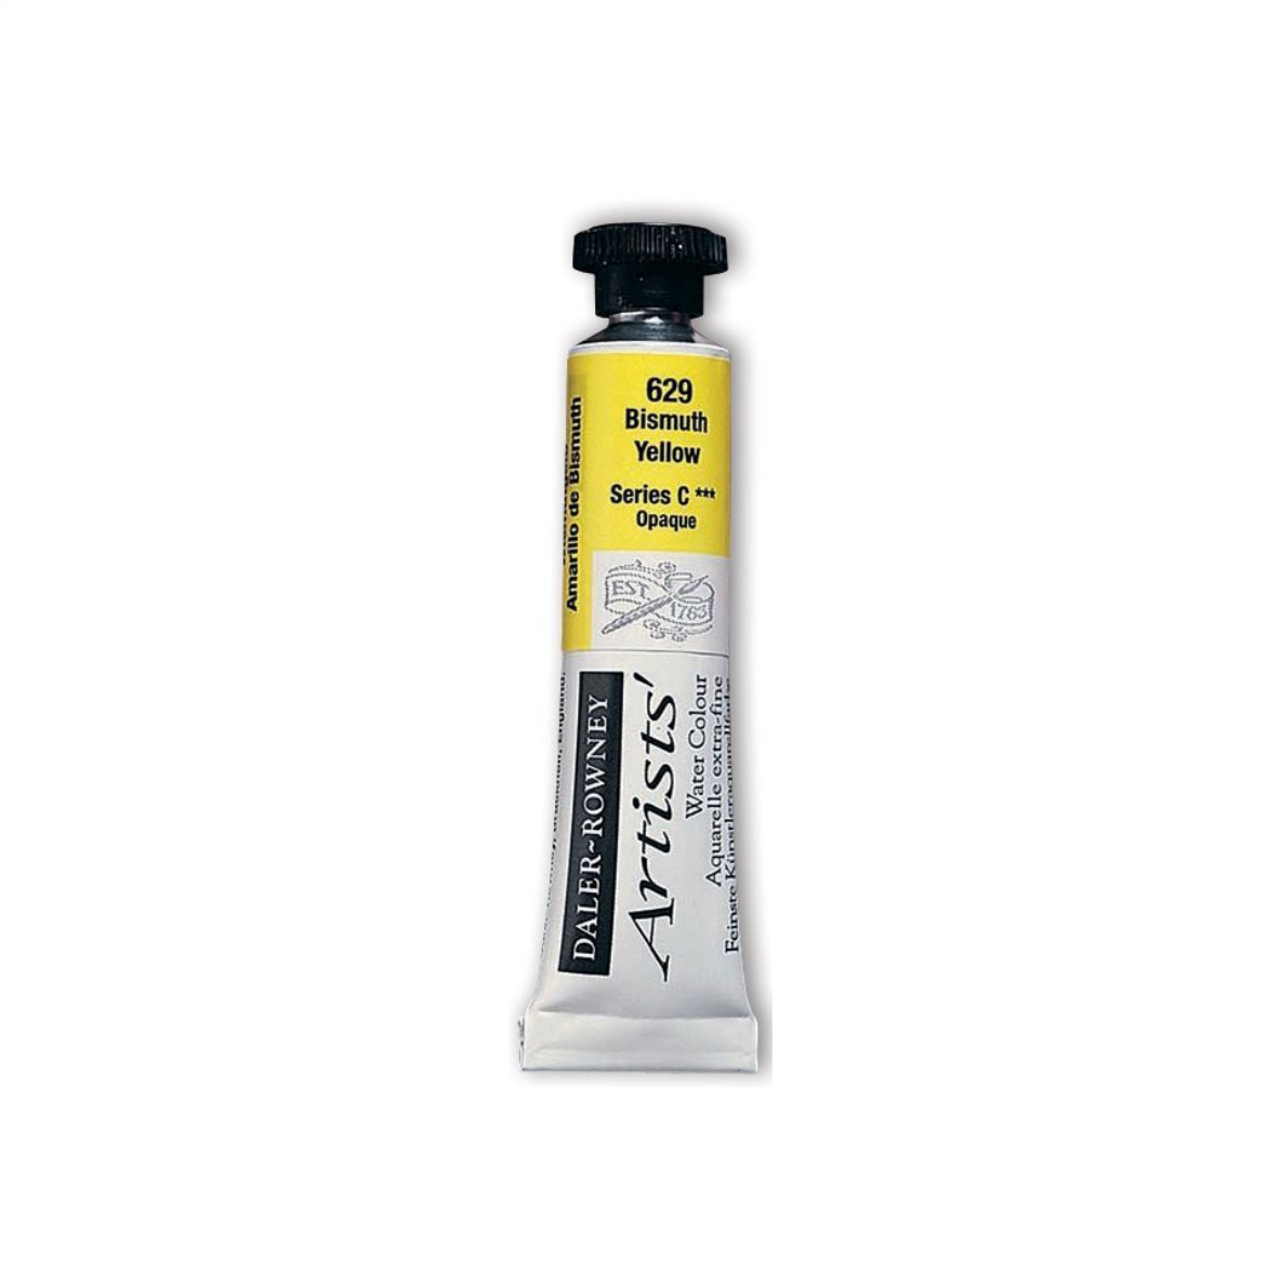 Daler-Rowney Artists' Watercolour Tube 15ml - Bismuth Yellow #629